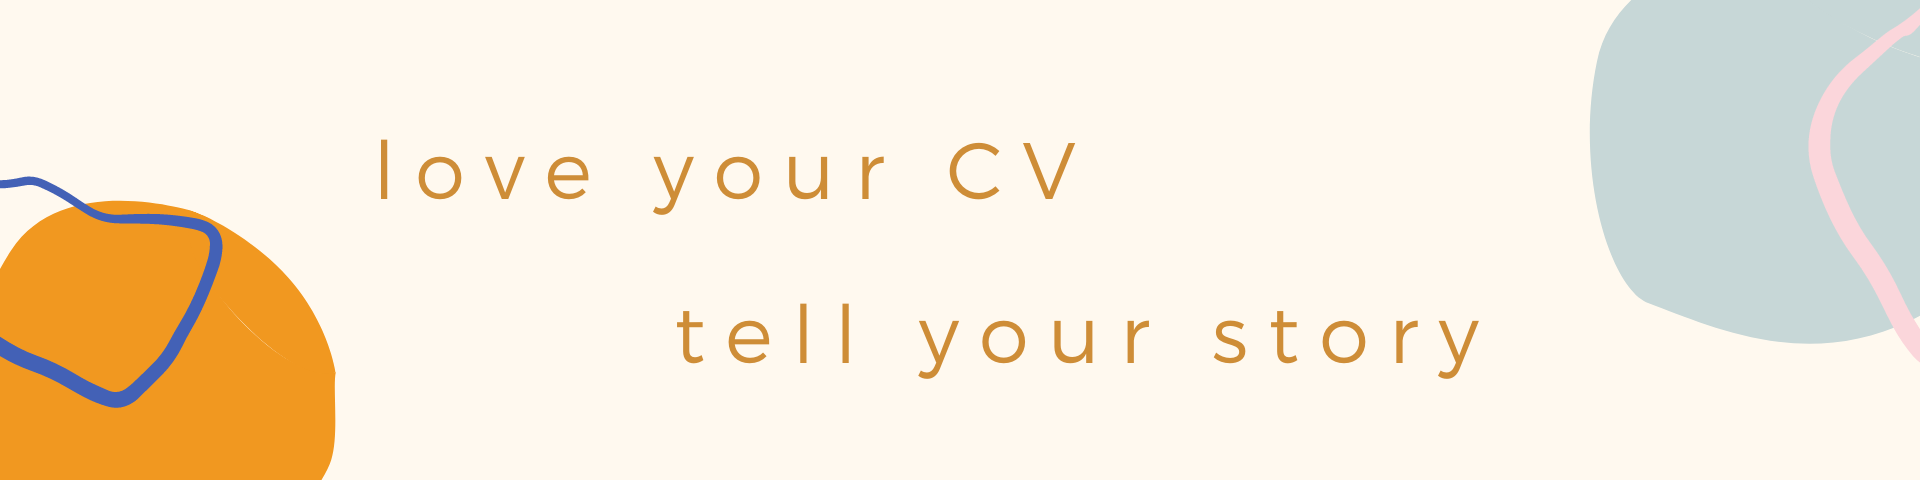 love your CV banner